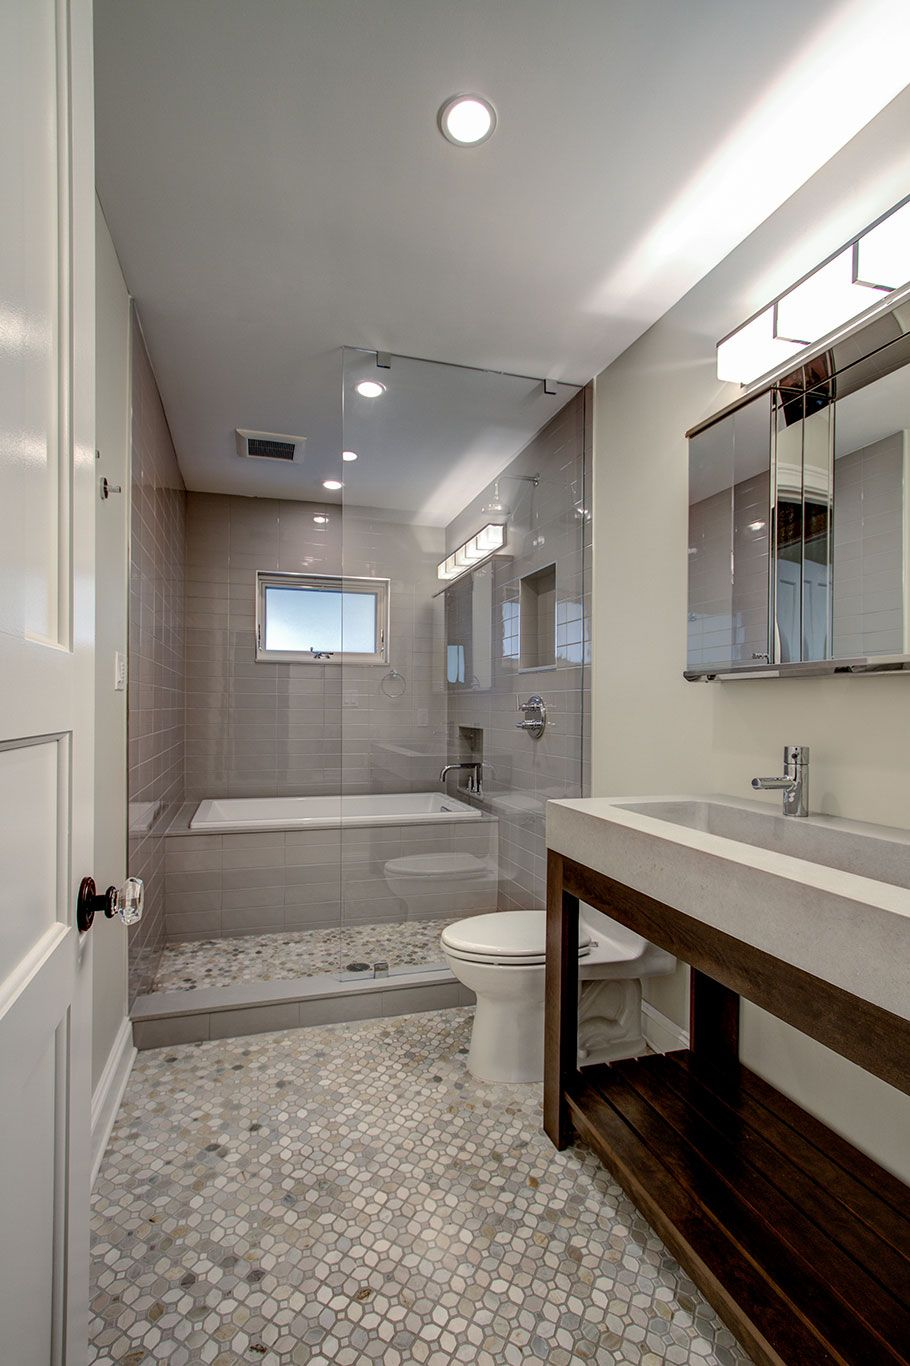 Guest Bathroom With Tub Enclosed Within Glassed In Shower Space. Brownstone  Renovation In Park